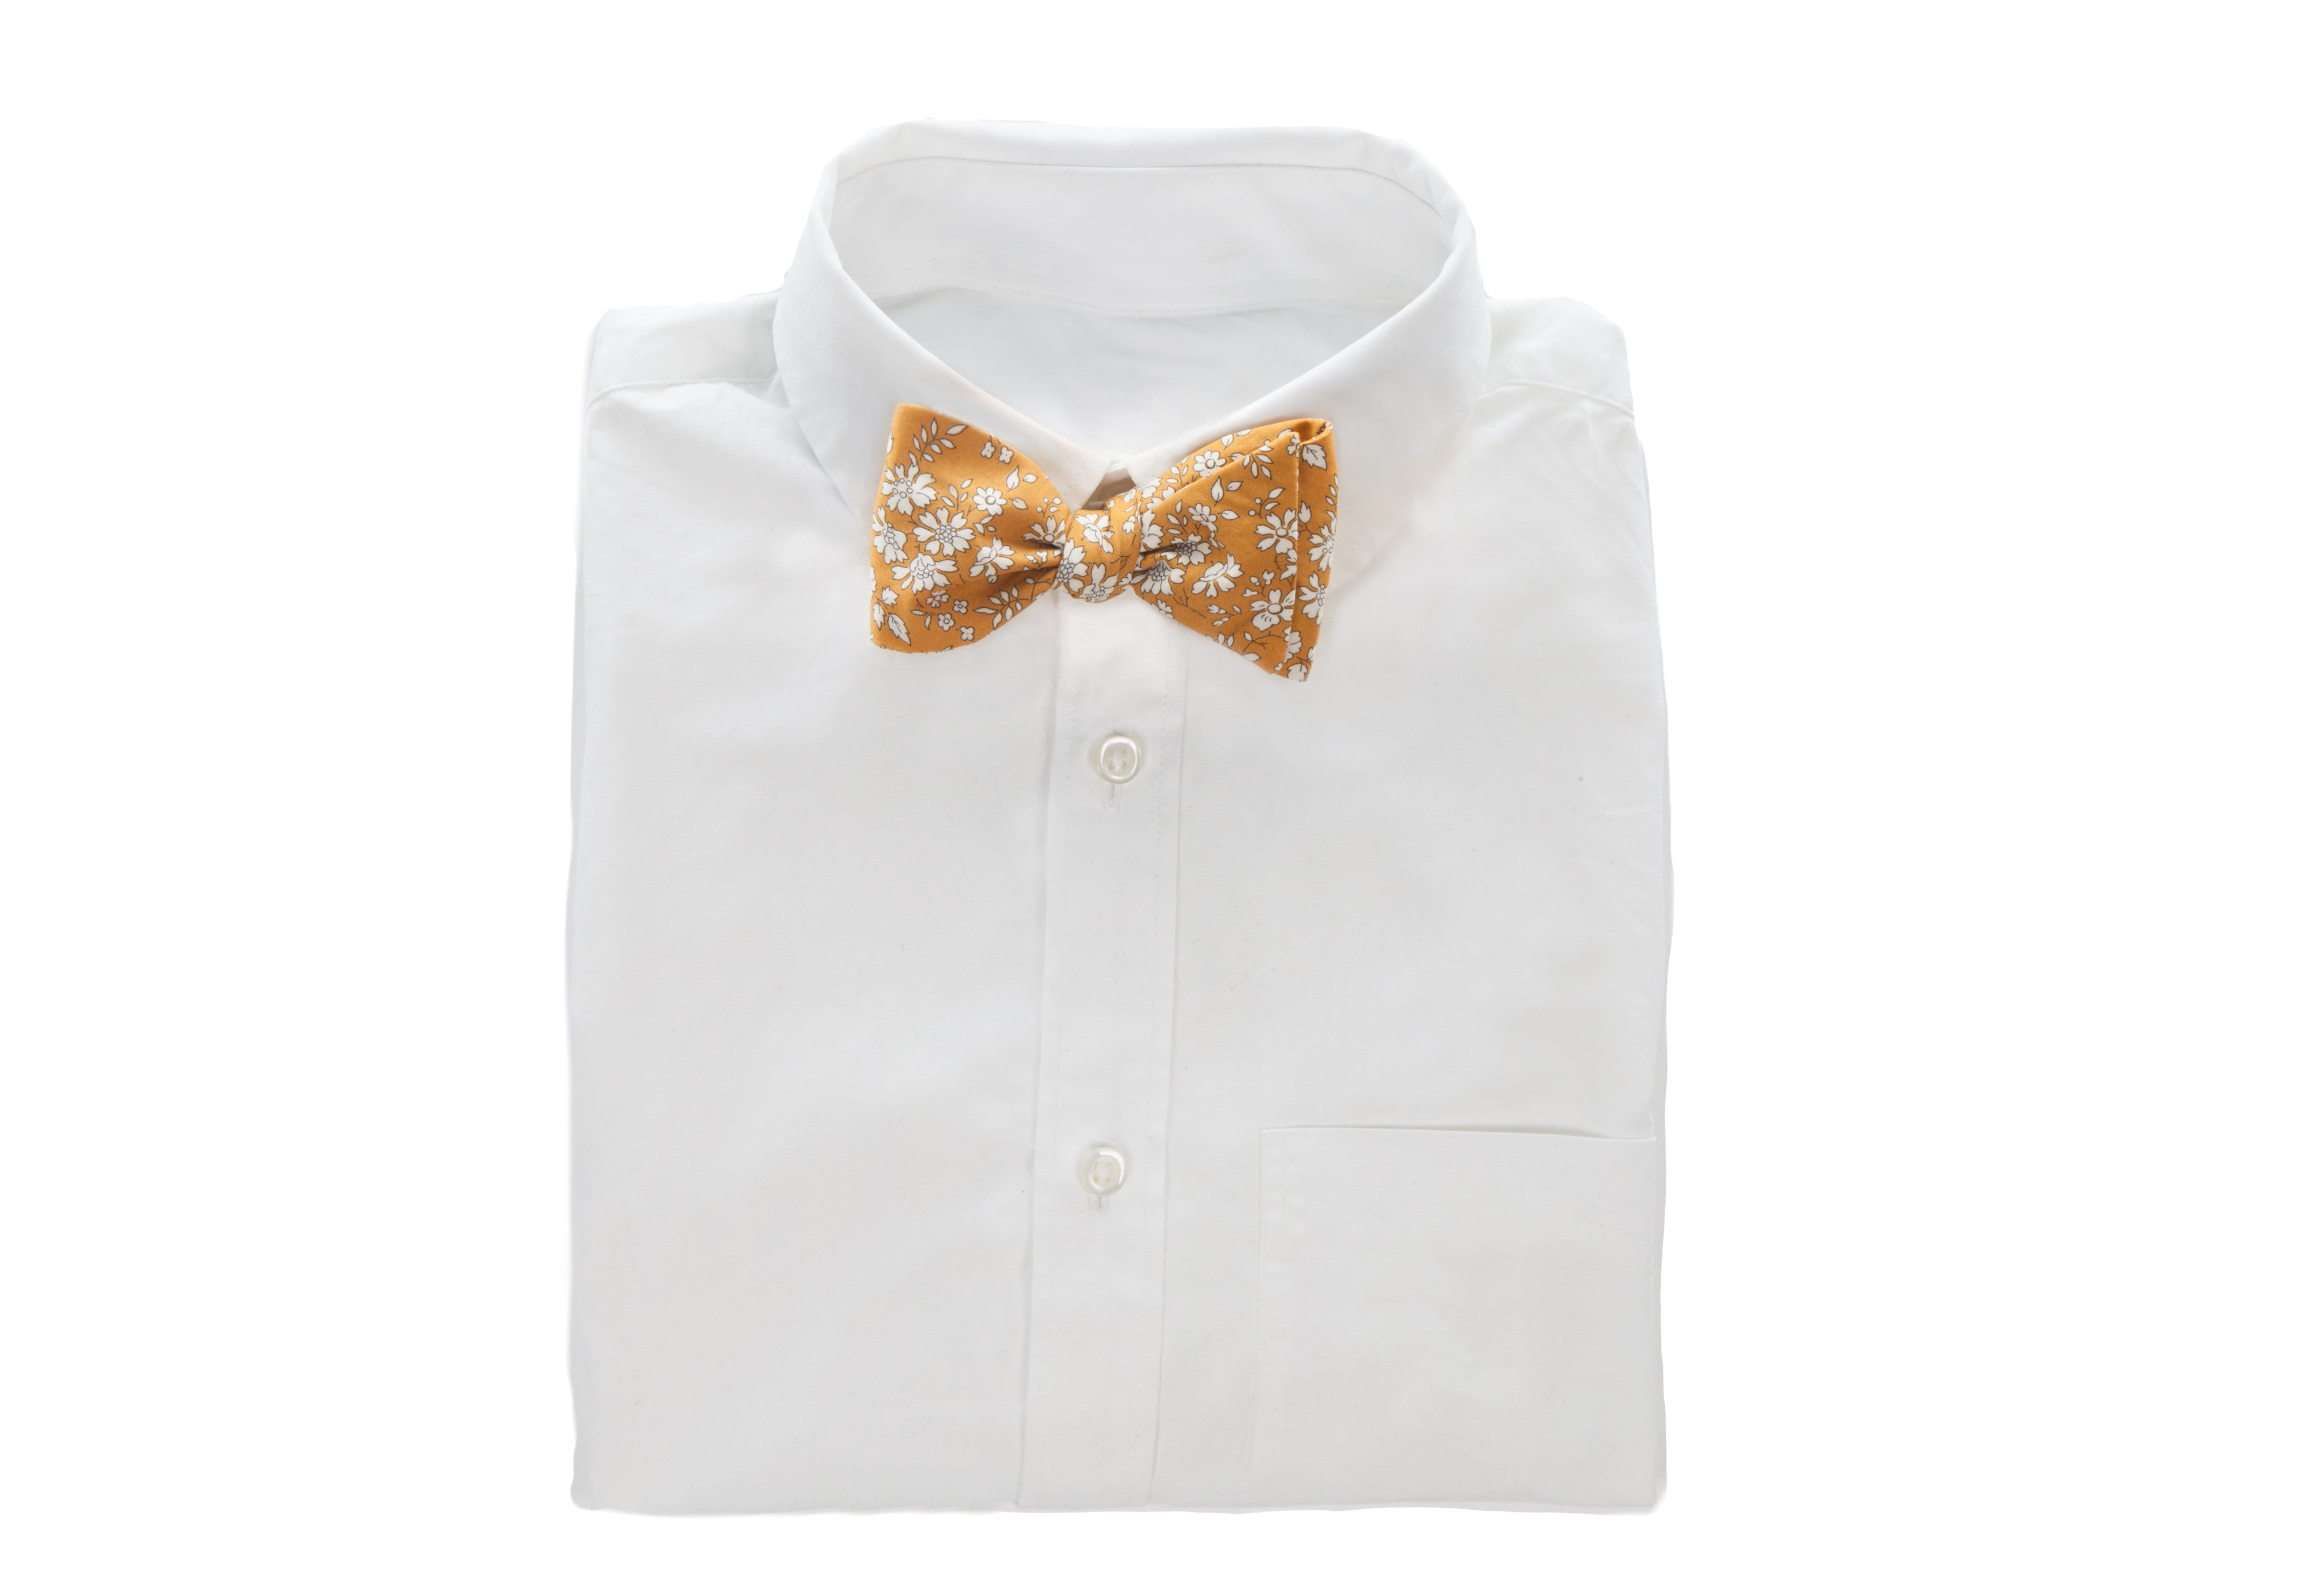 Liberty of London Mustard Lawn Bow Tie. Fabric From England.